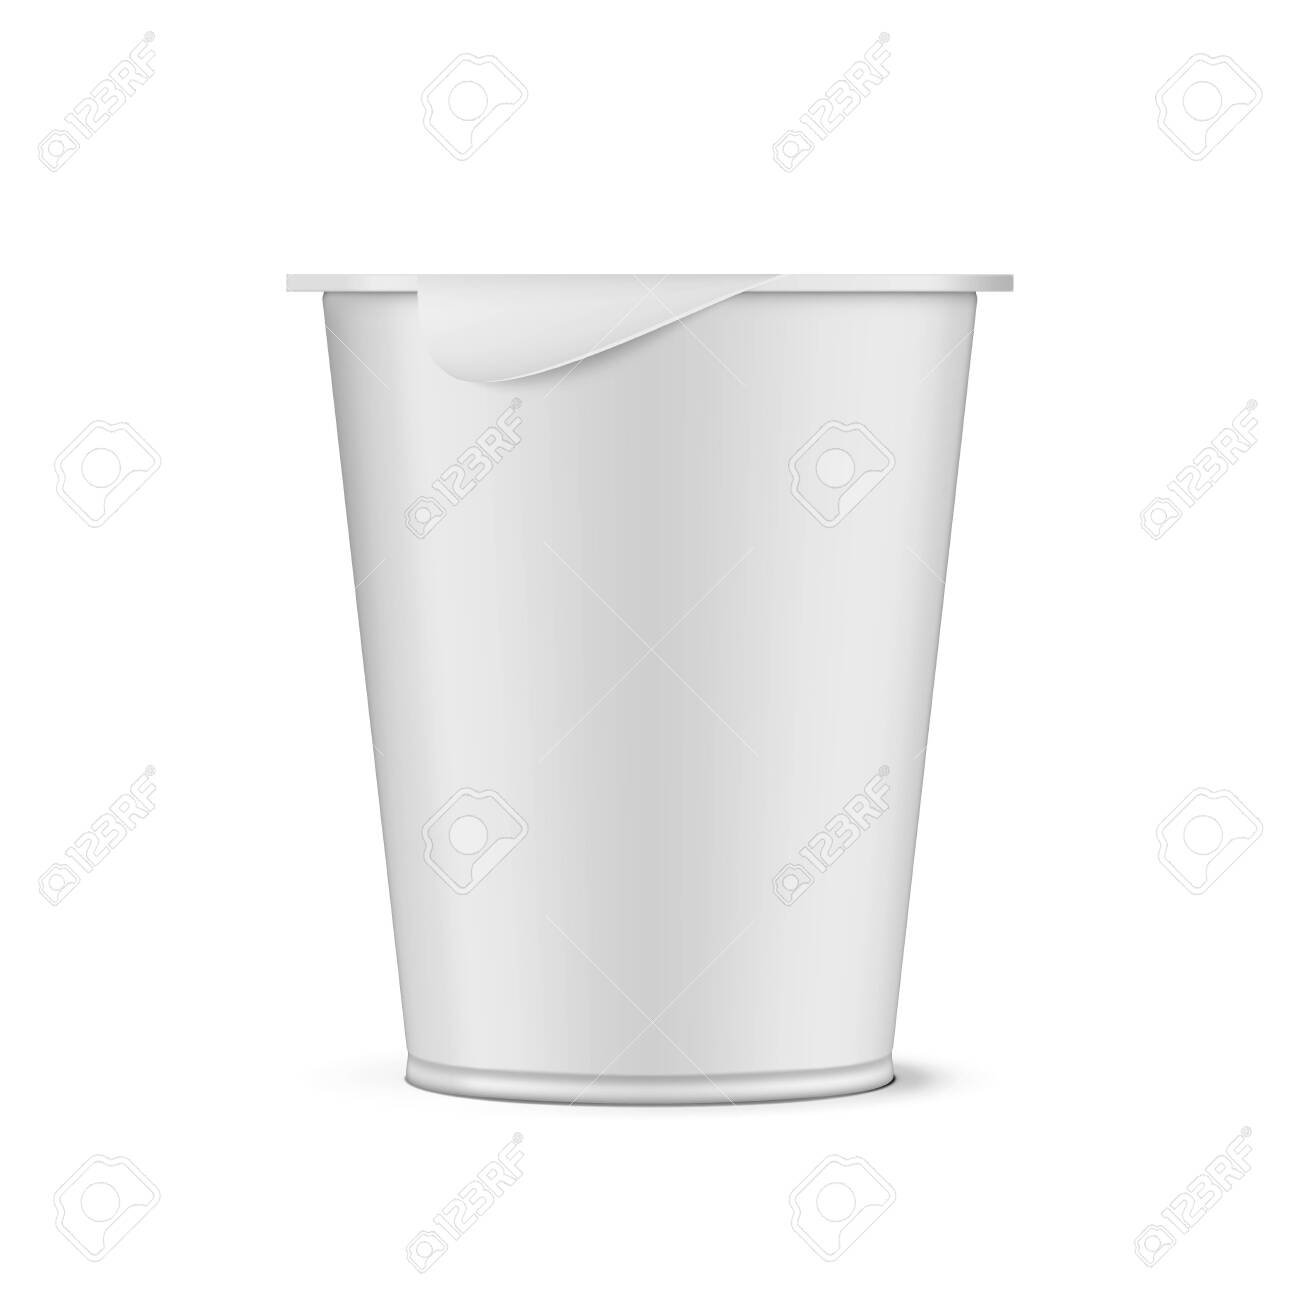 Round White Plastic Pot With Foil Cover Cup - 148144626